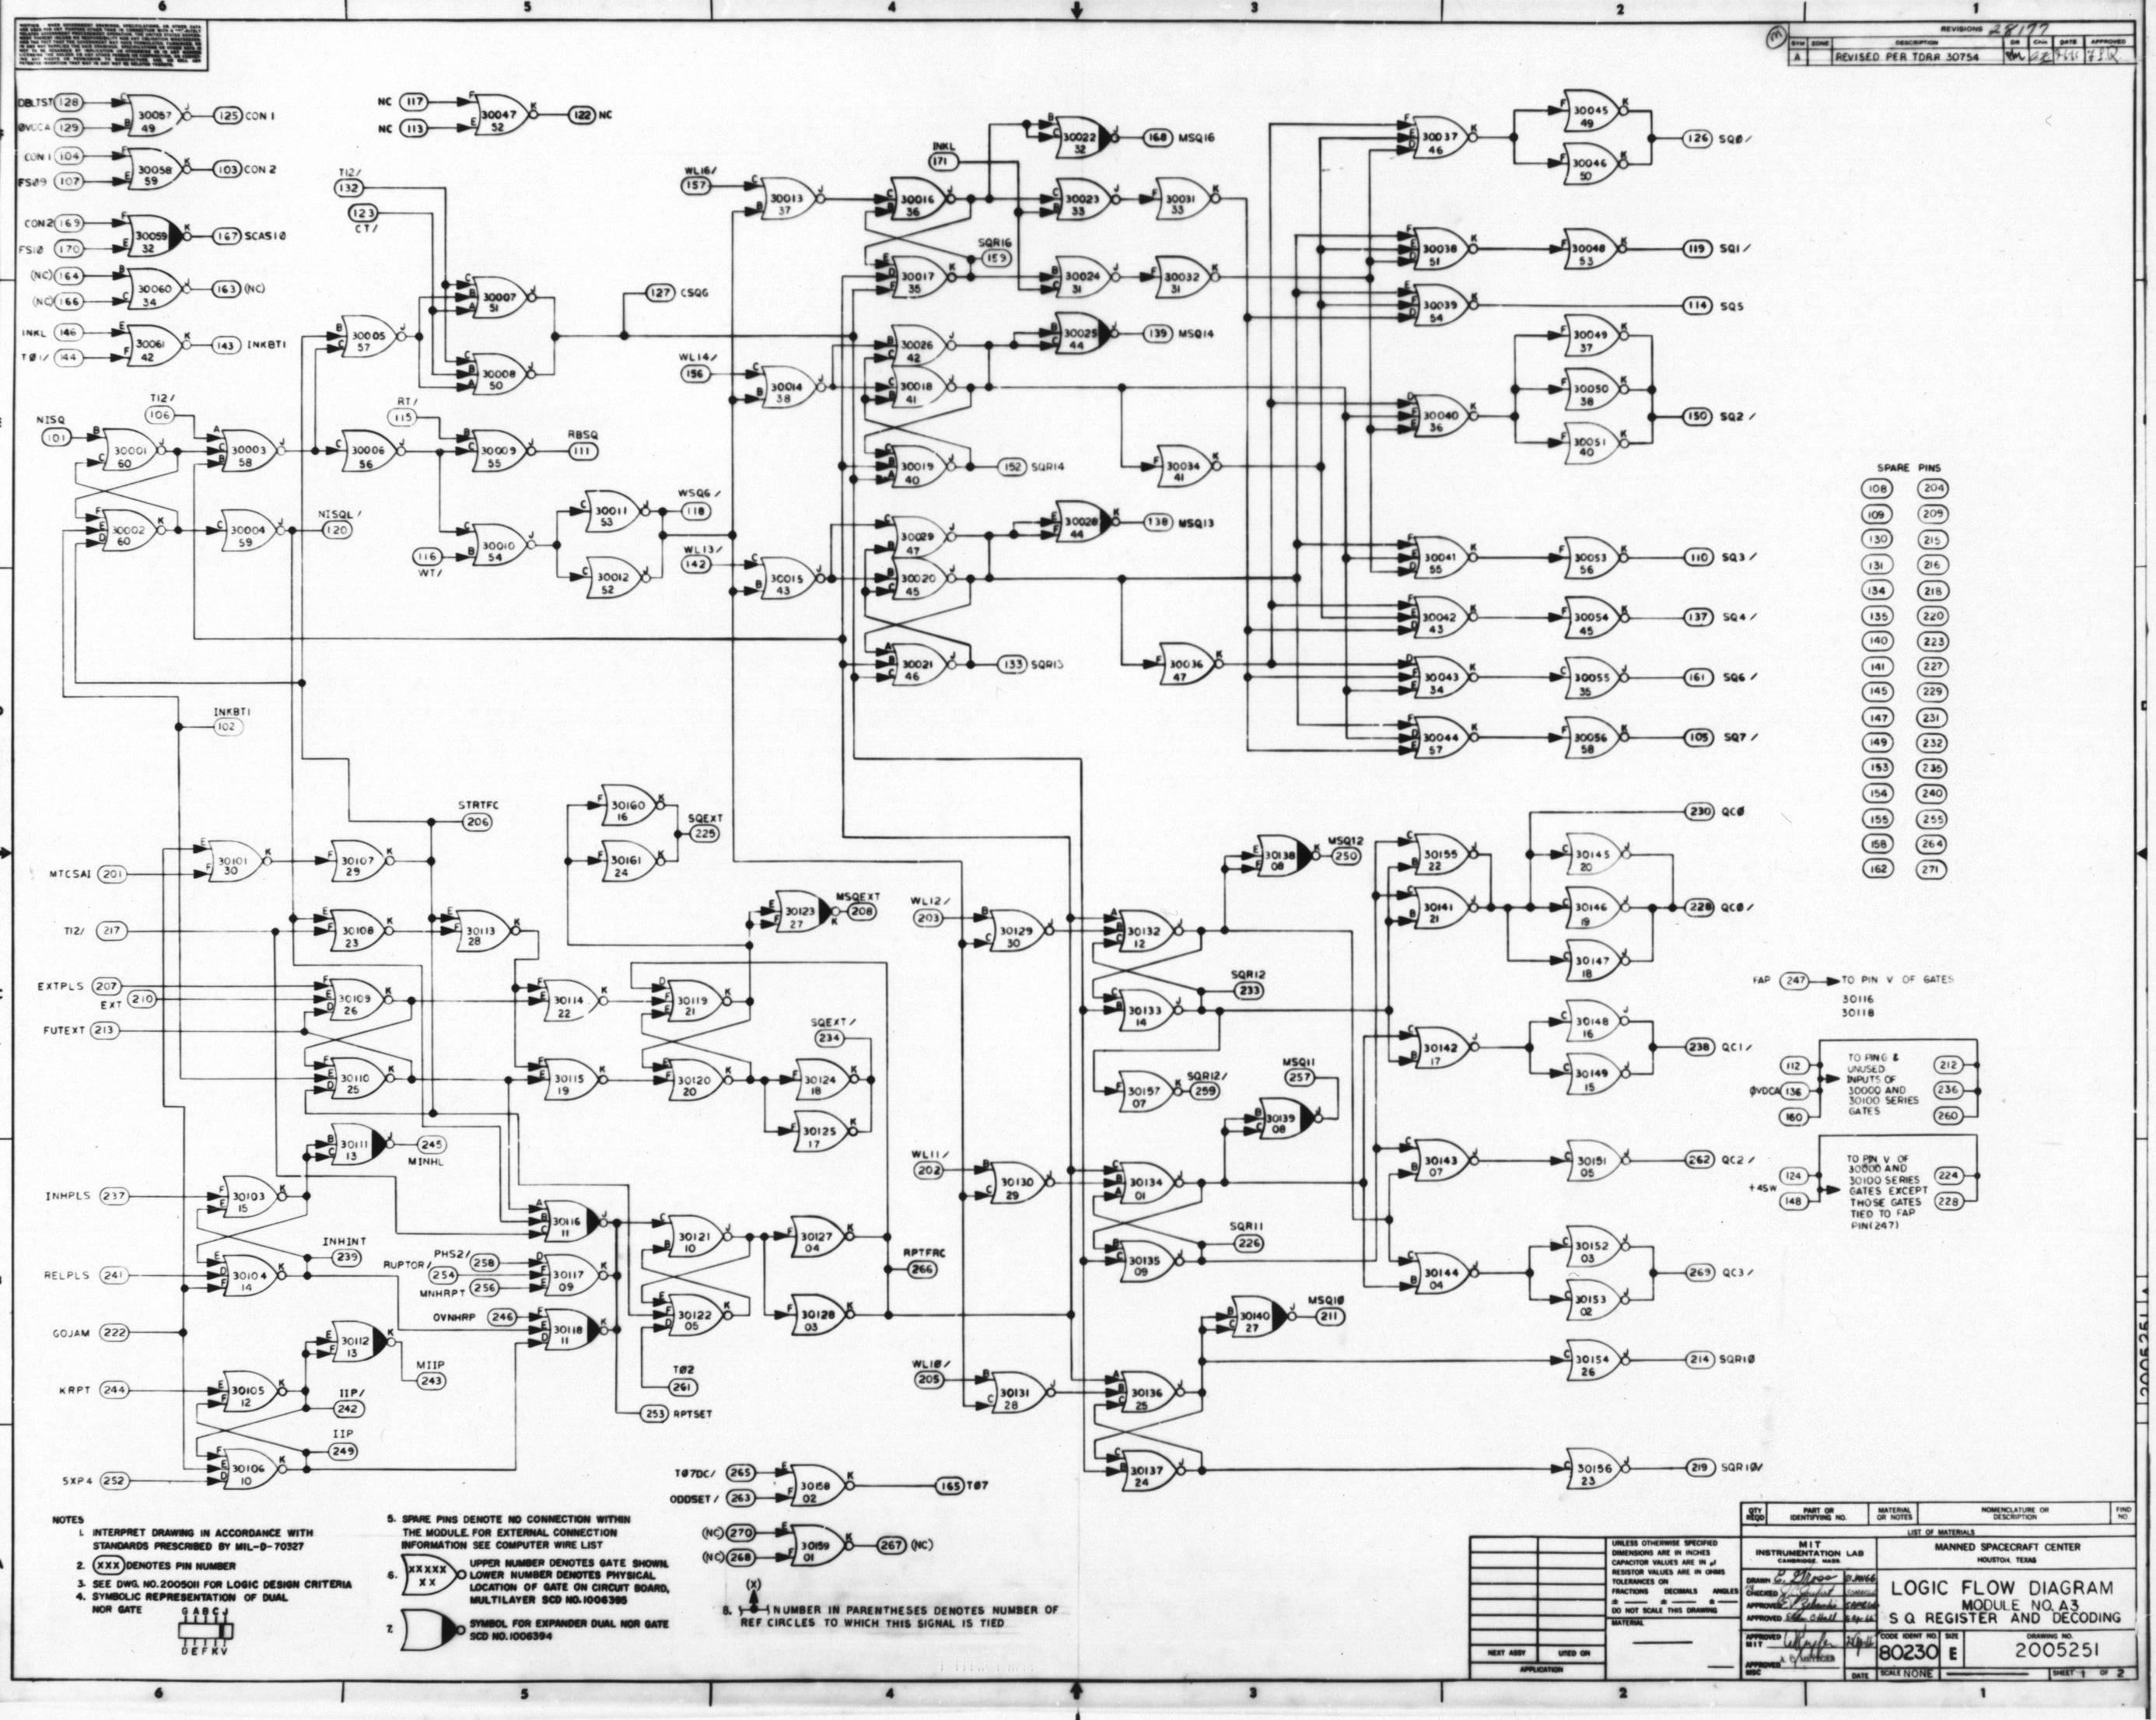 Apollo Guidance Computer Agc Schematics